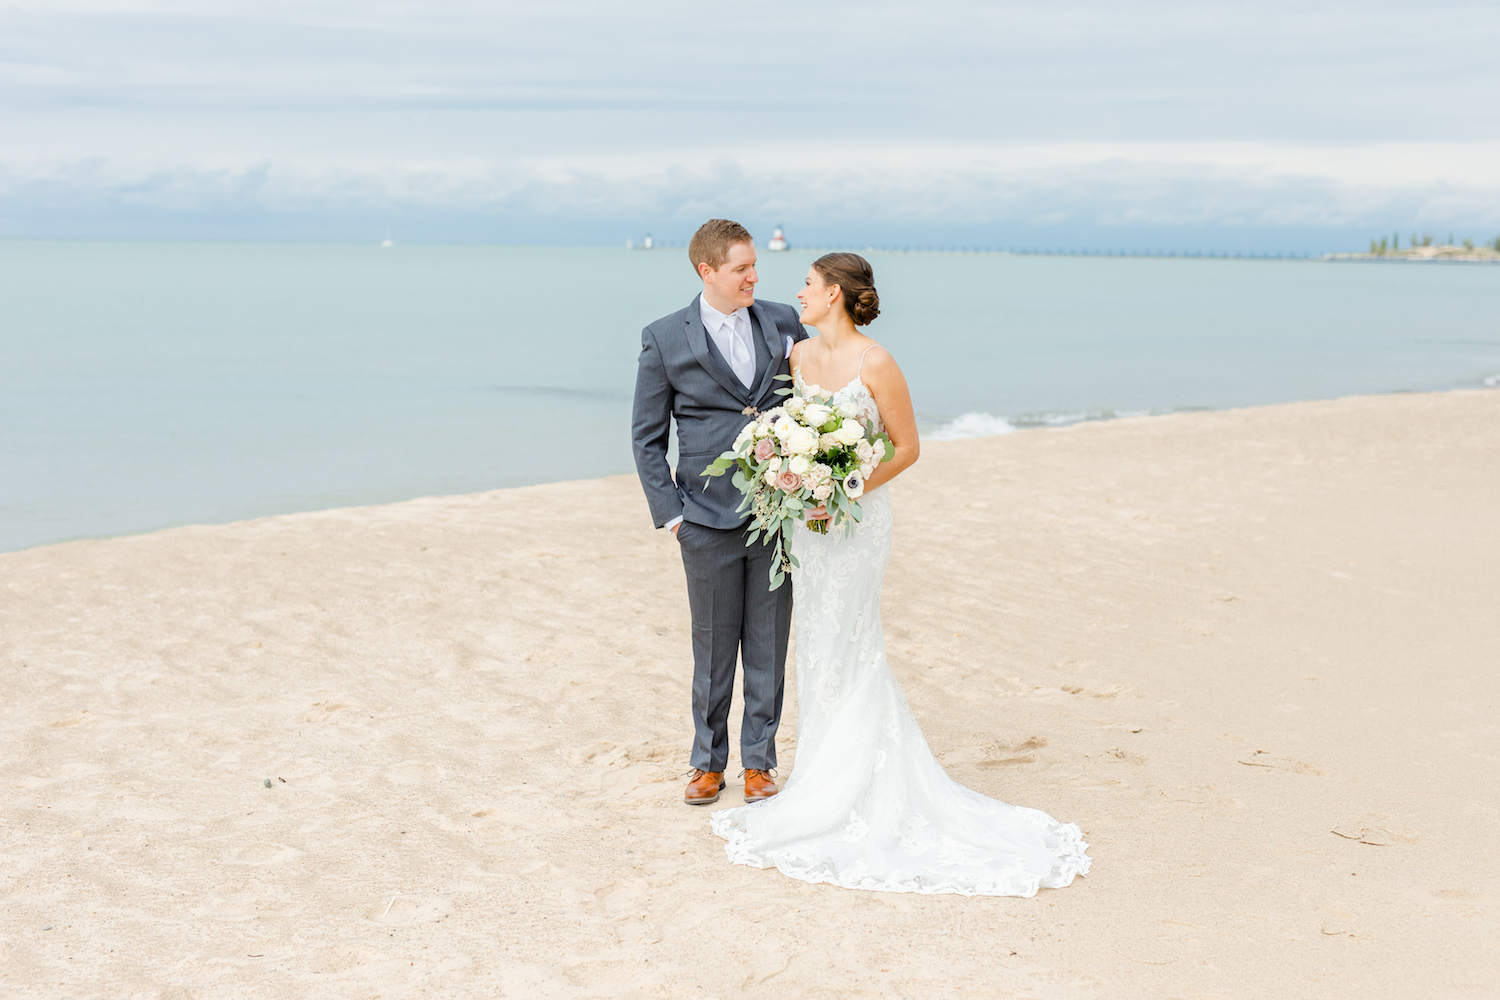 Bride and groom smiling at beach of the lakehouse wedding